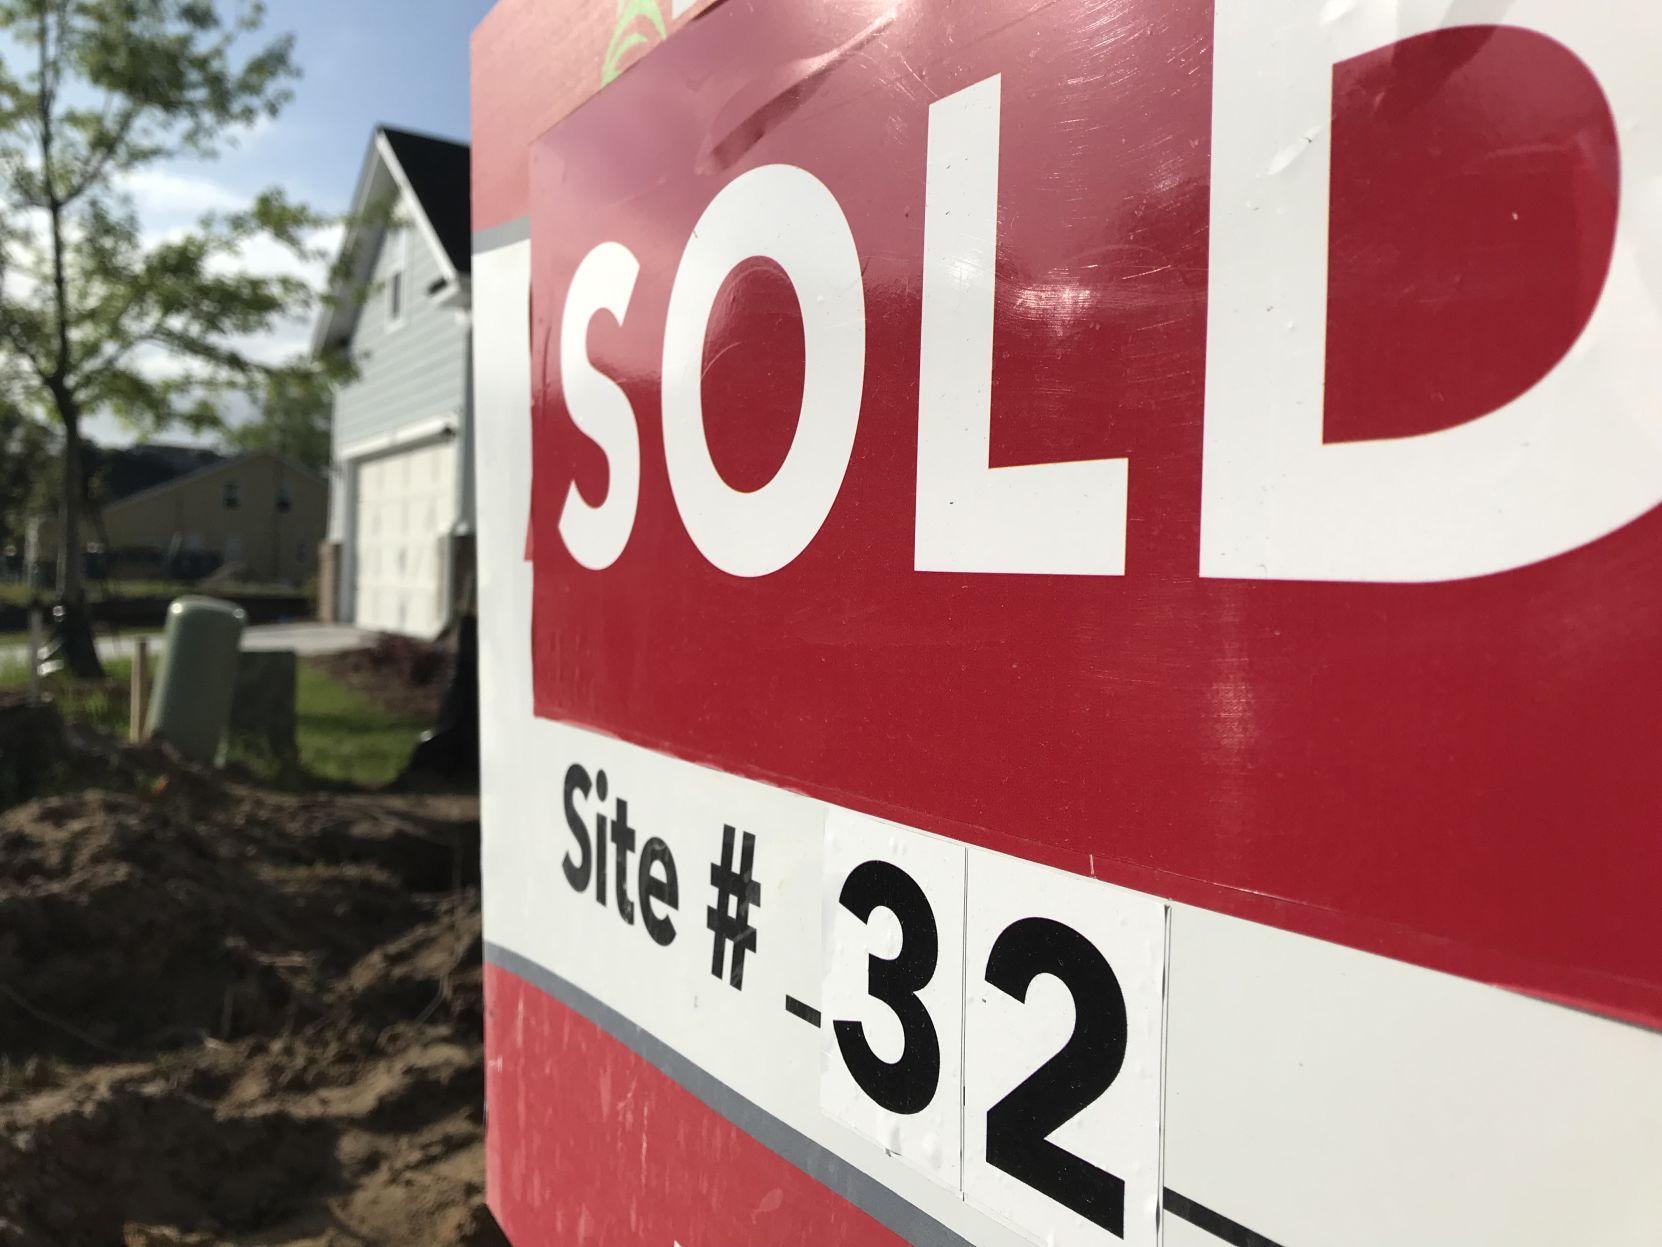 postandcourier.com - David Slade dslade@postandcourier.com - Mortgage interest rates have hit record lows during the pandemic-driven recession